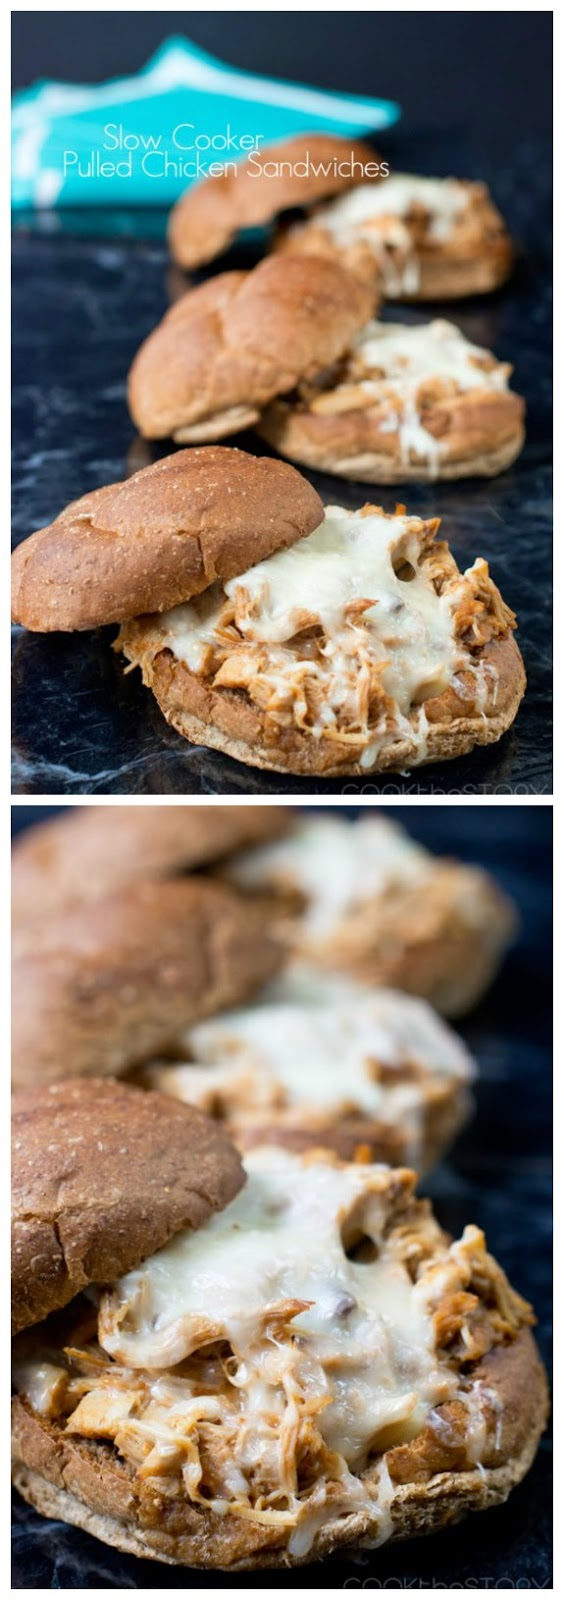 Slow Cooker Pulled Chicken Sandwiches from Cook the Story found on SlowCookerFromScratch.com